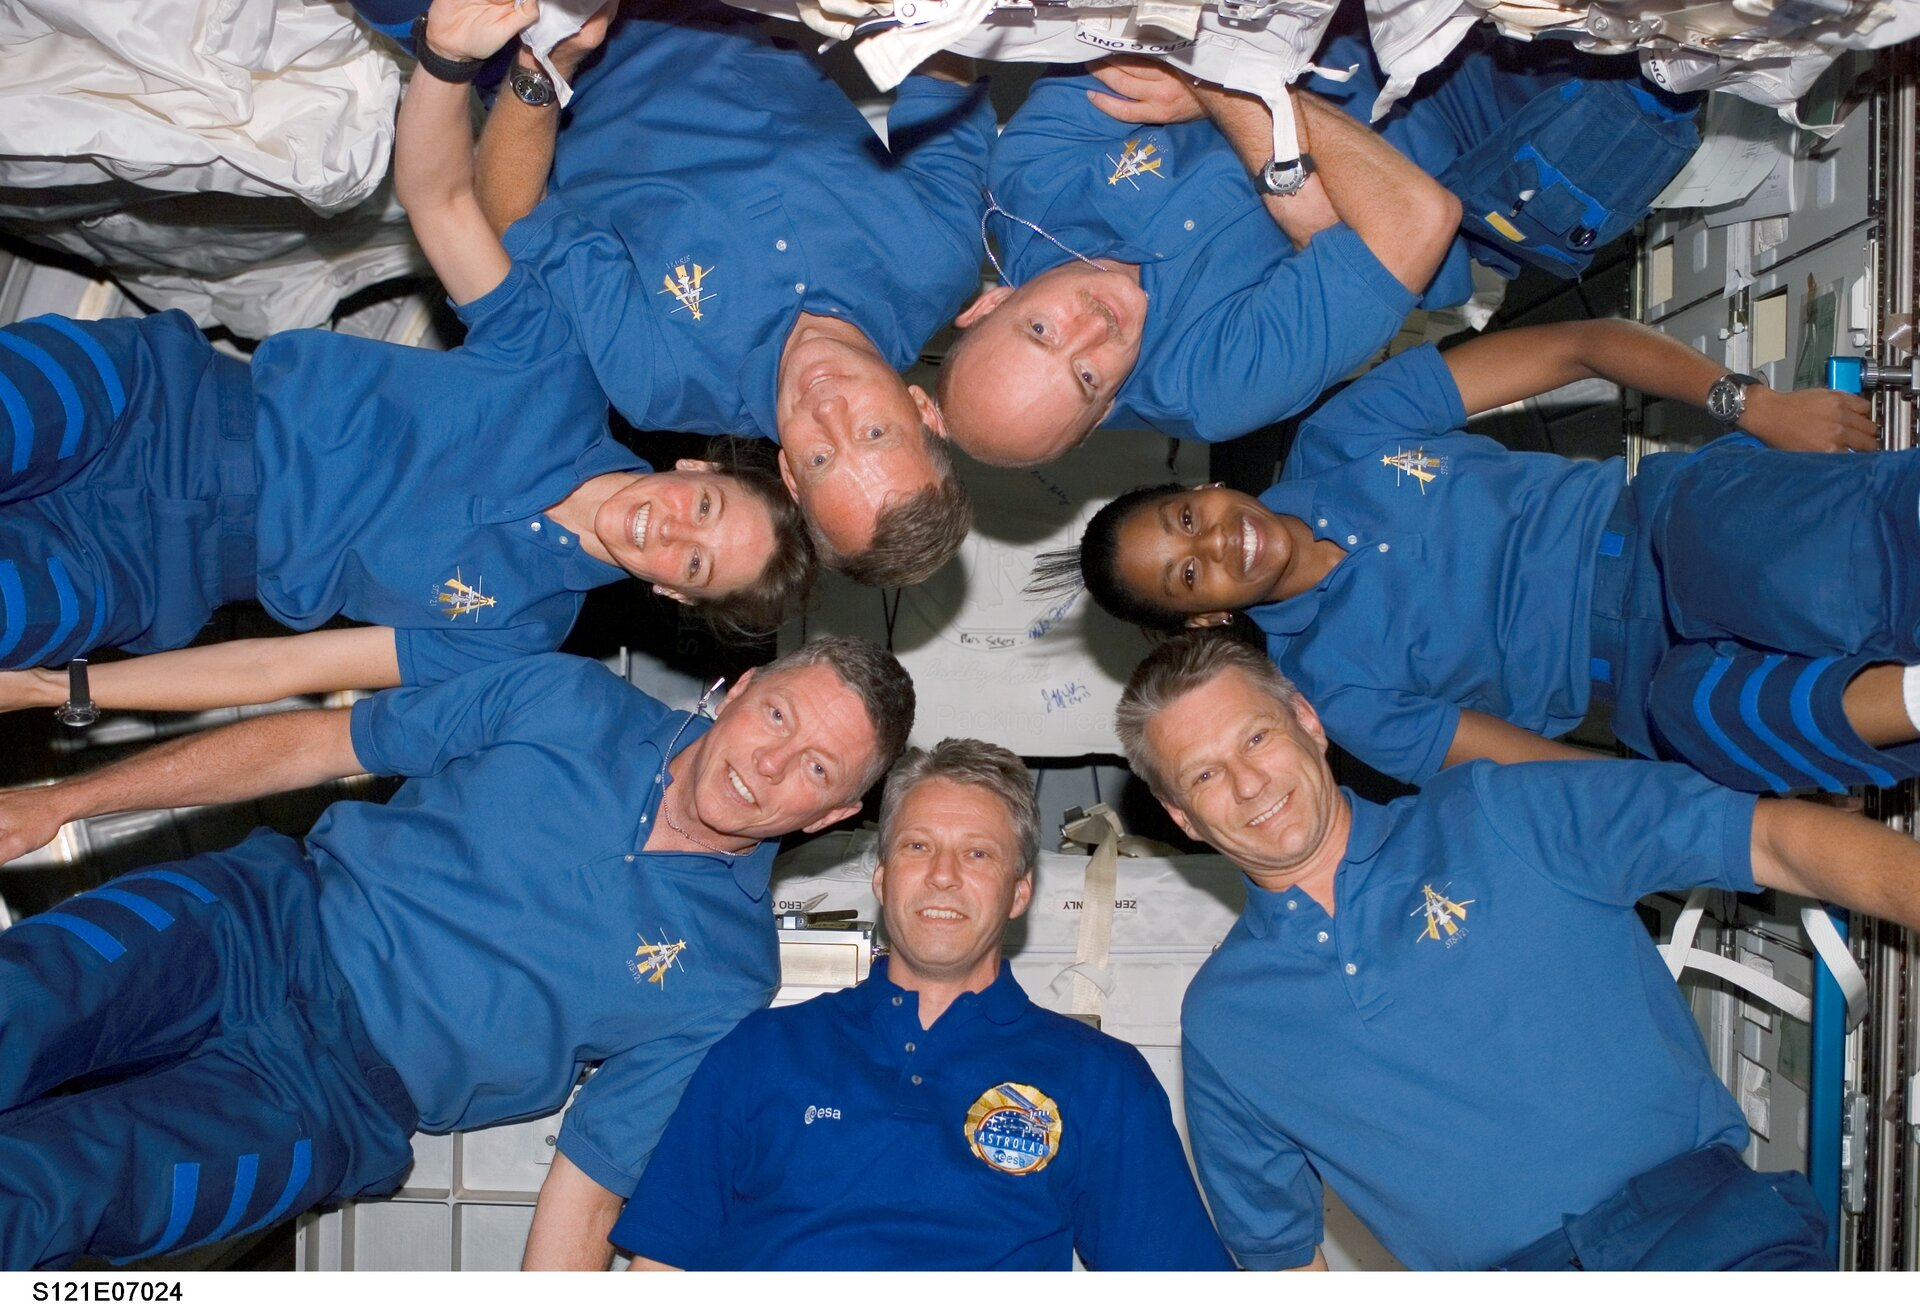 Reiter arrived at the Station with the STS-121 crew